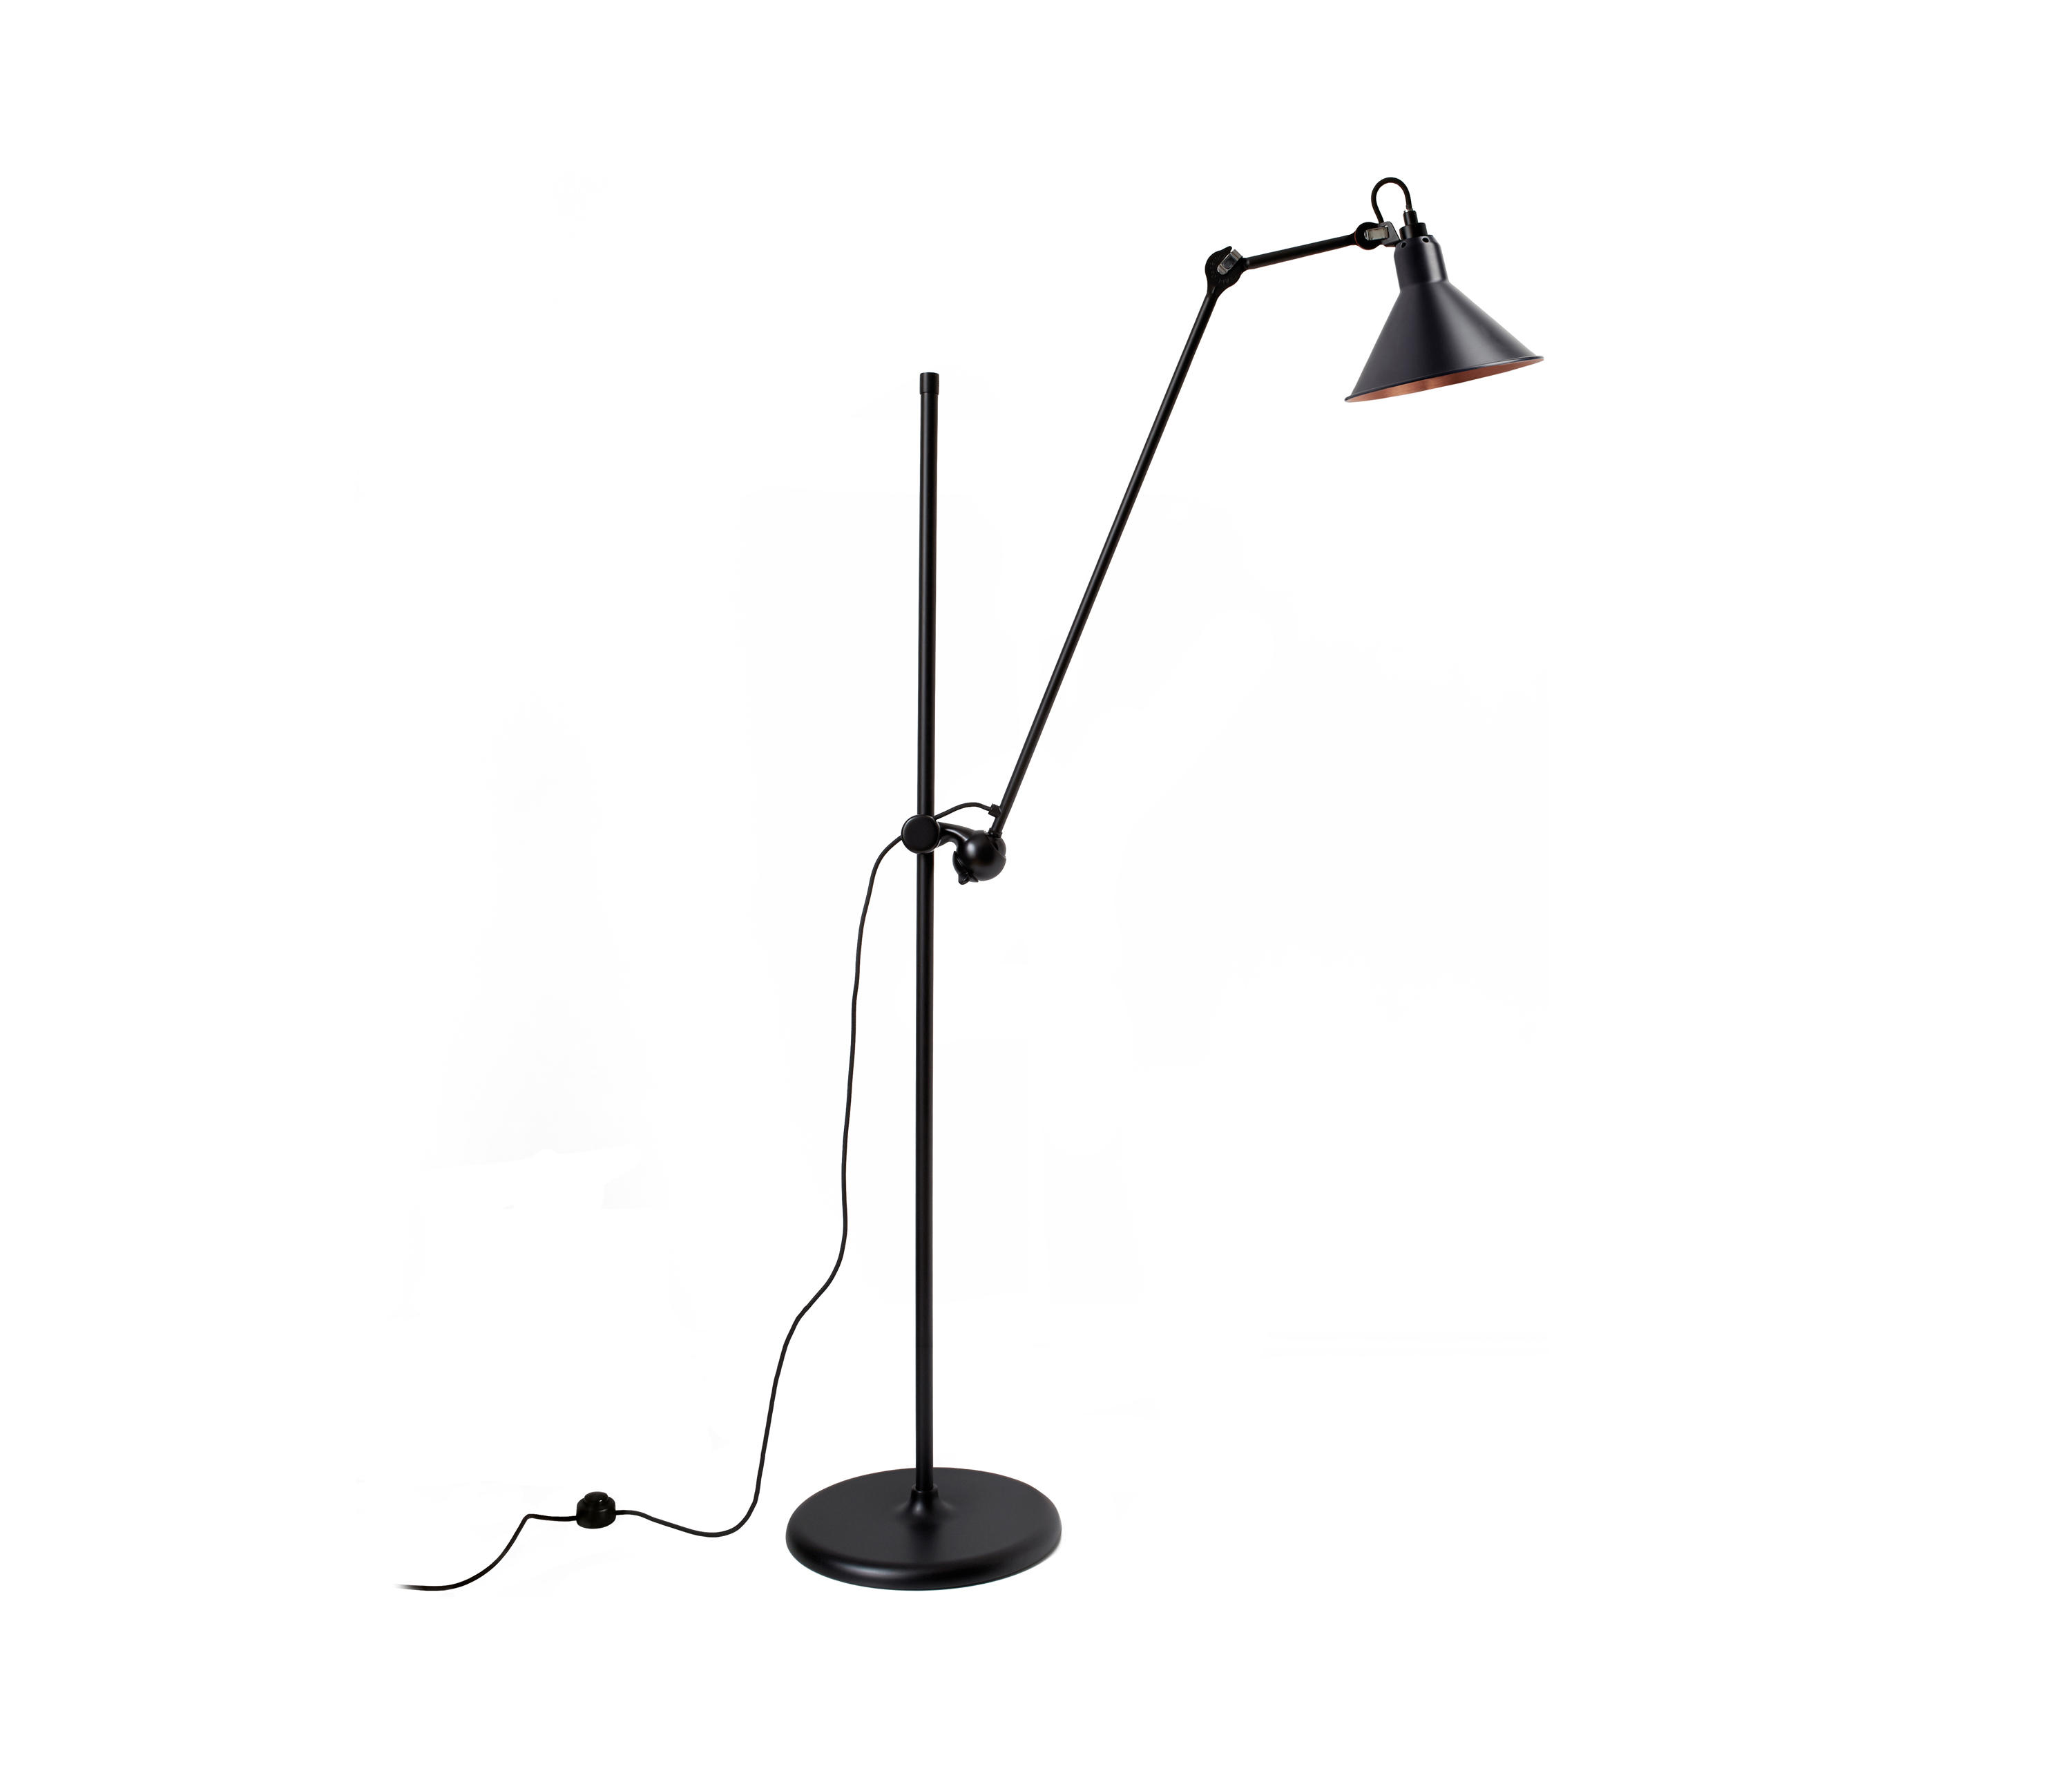 lampe gras n 215 l black copper general lighting from dcw ditions architonic. Black Bedroom Furniture Sets. Home Design Ideas